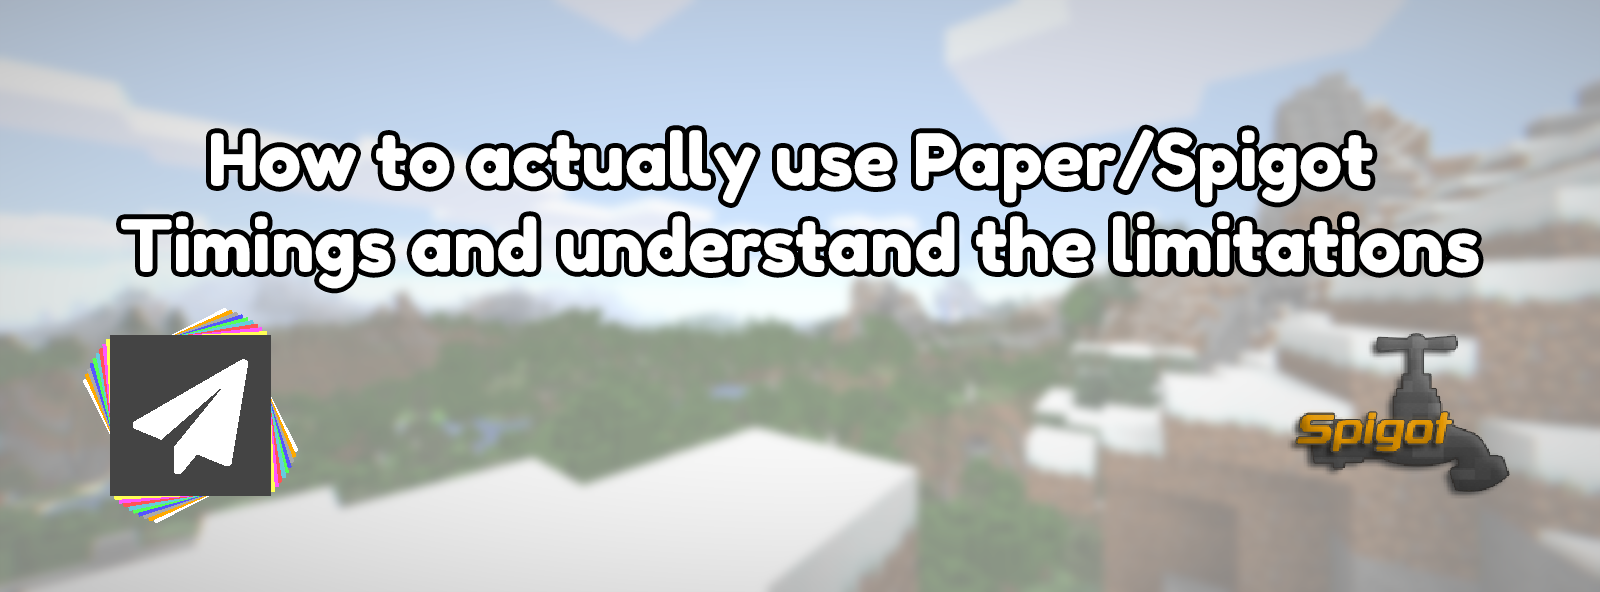 How to actually use Paper/Spigot Timings and understand the limitations